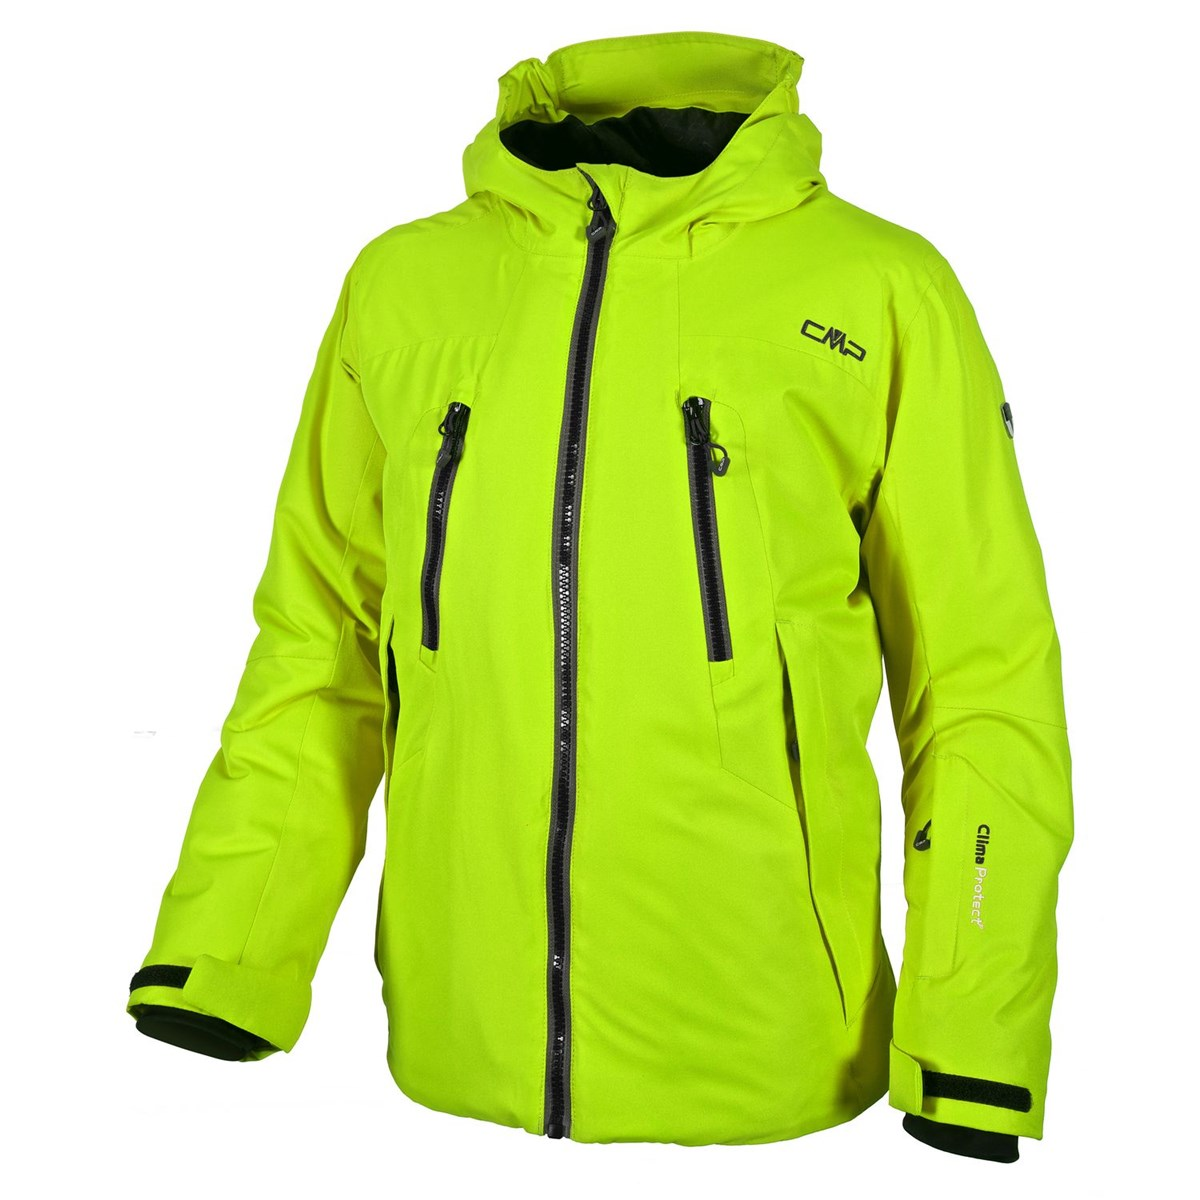 0fedc2d86d Campagnolo Morgan Boys Ski Jacket Lime Green. 0 (Be the first to add a  review!)